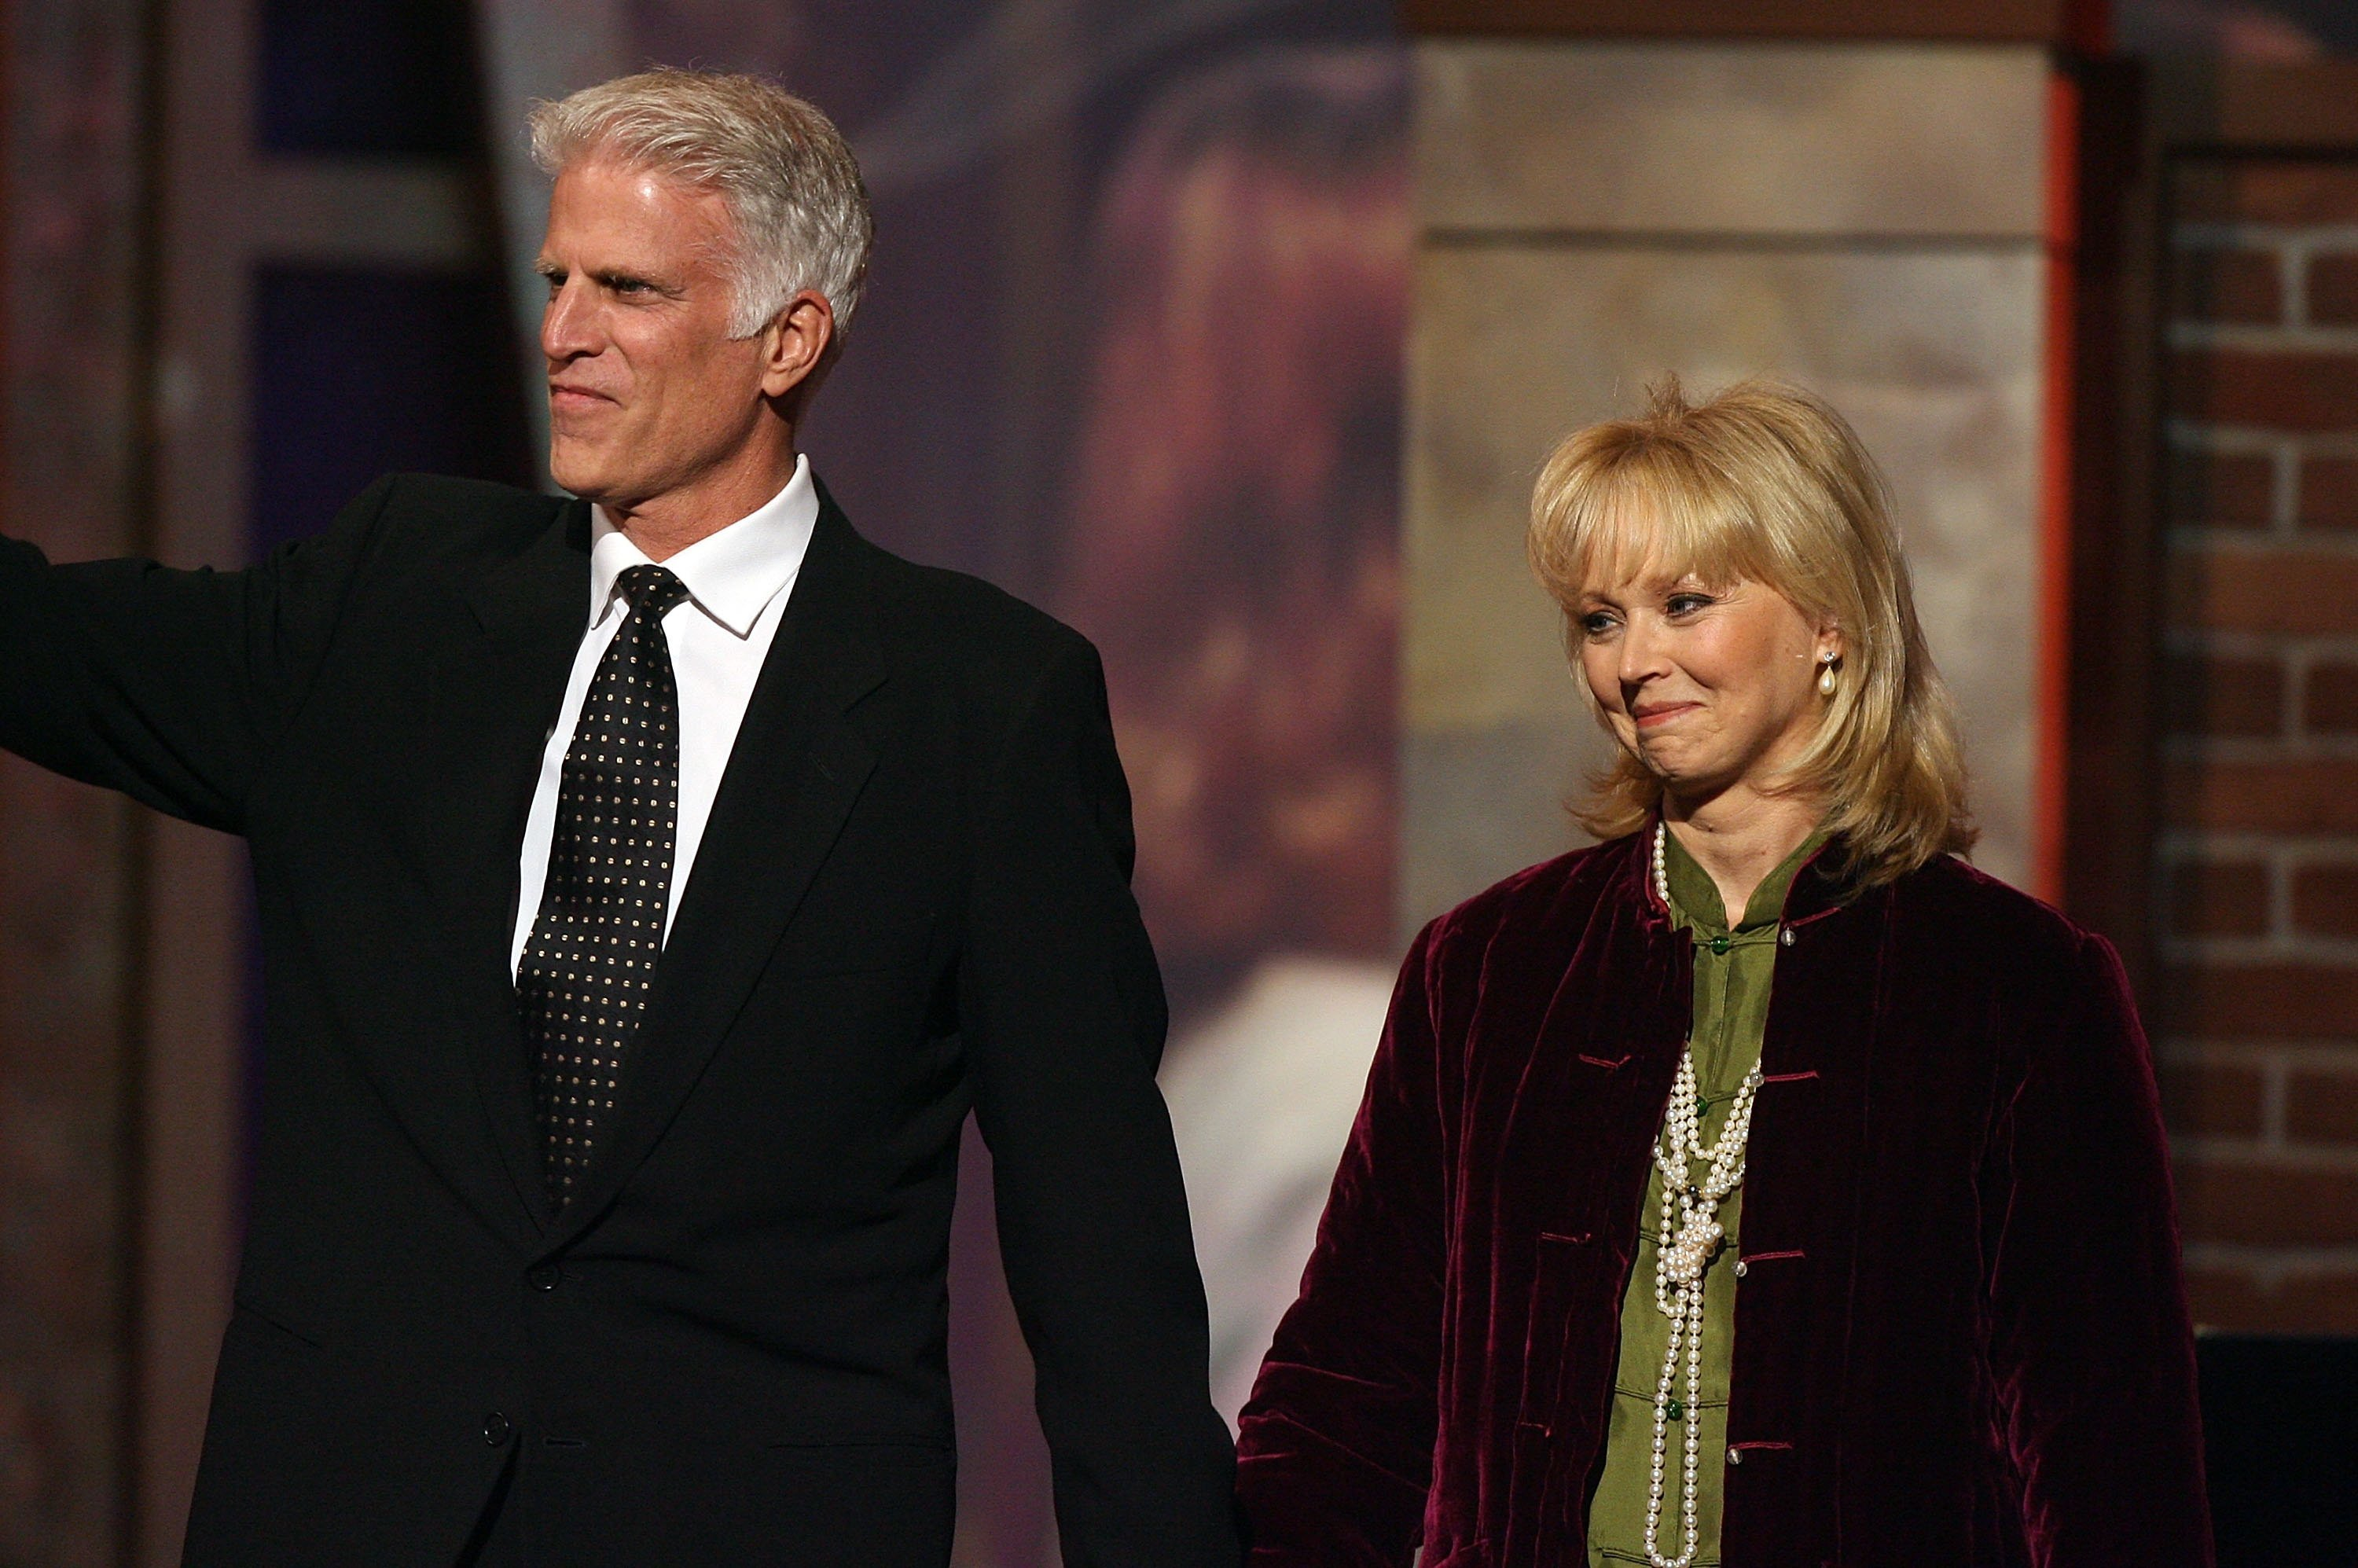 Ted Danson and Shelley Long at the Barker Hangar on March 19, 2006 | Photo: Getty Images